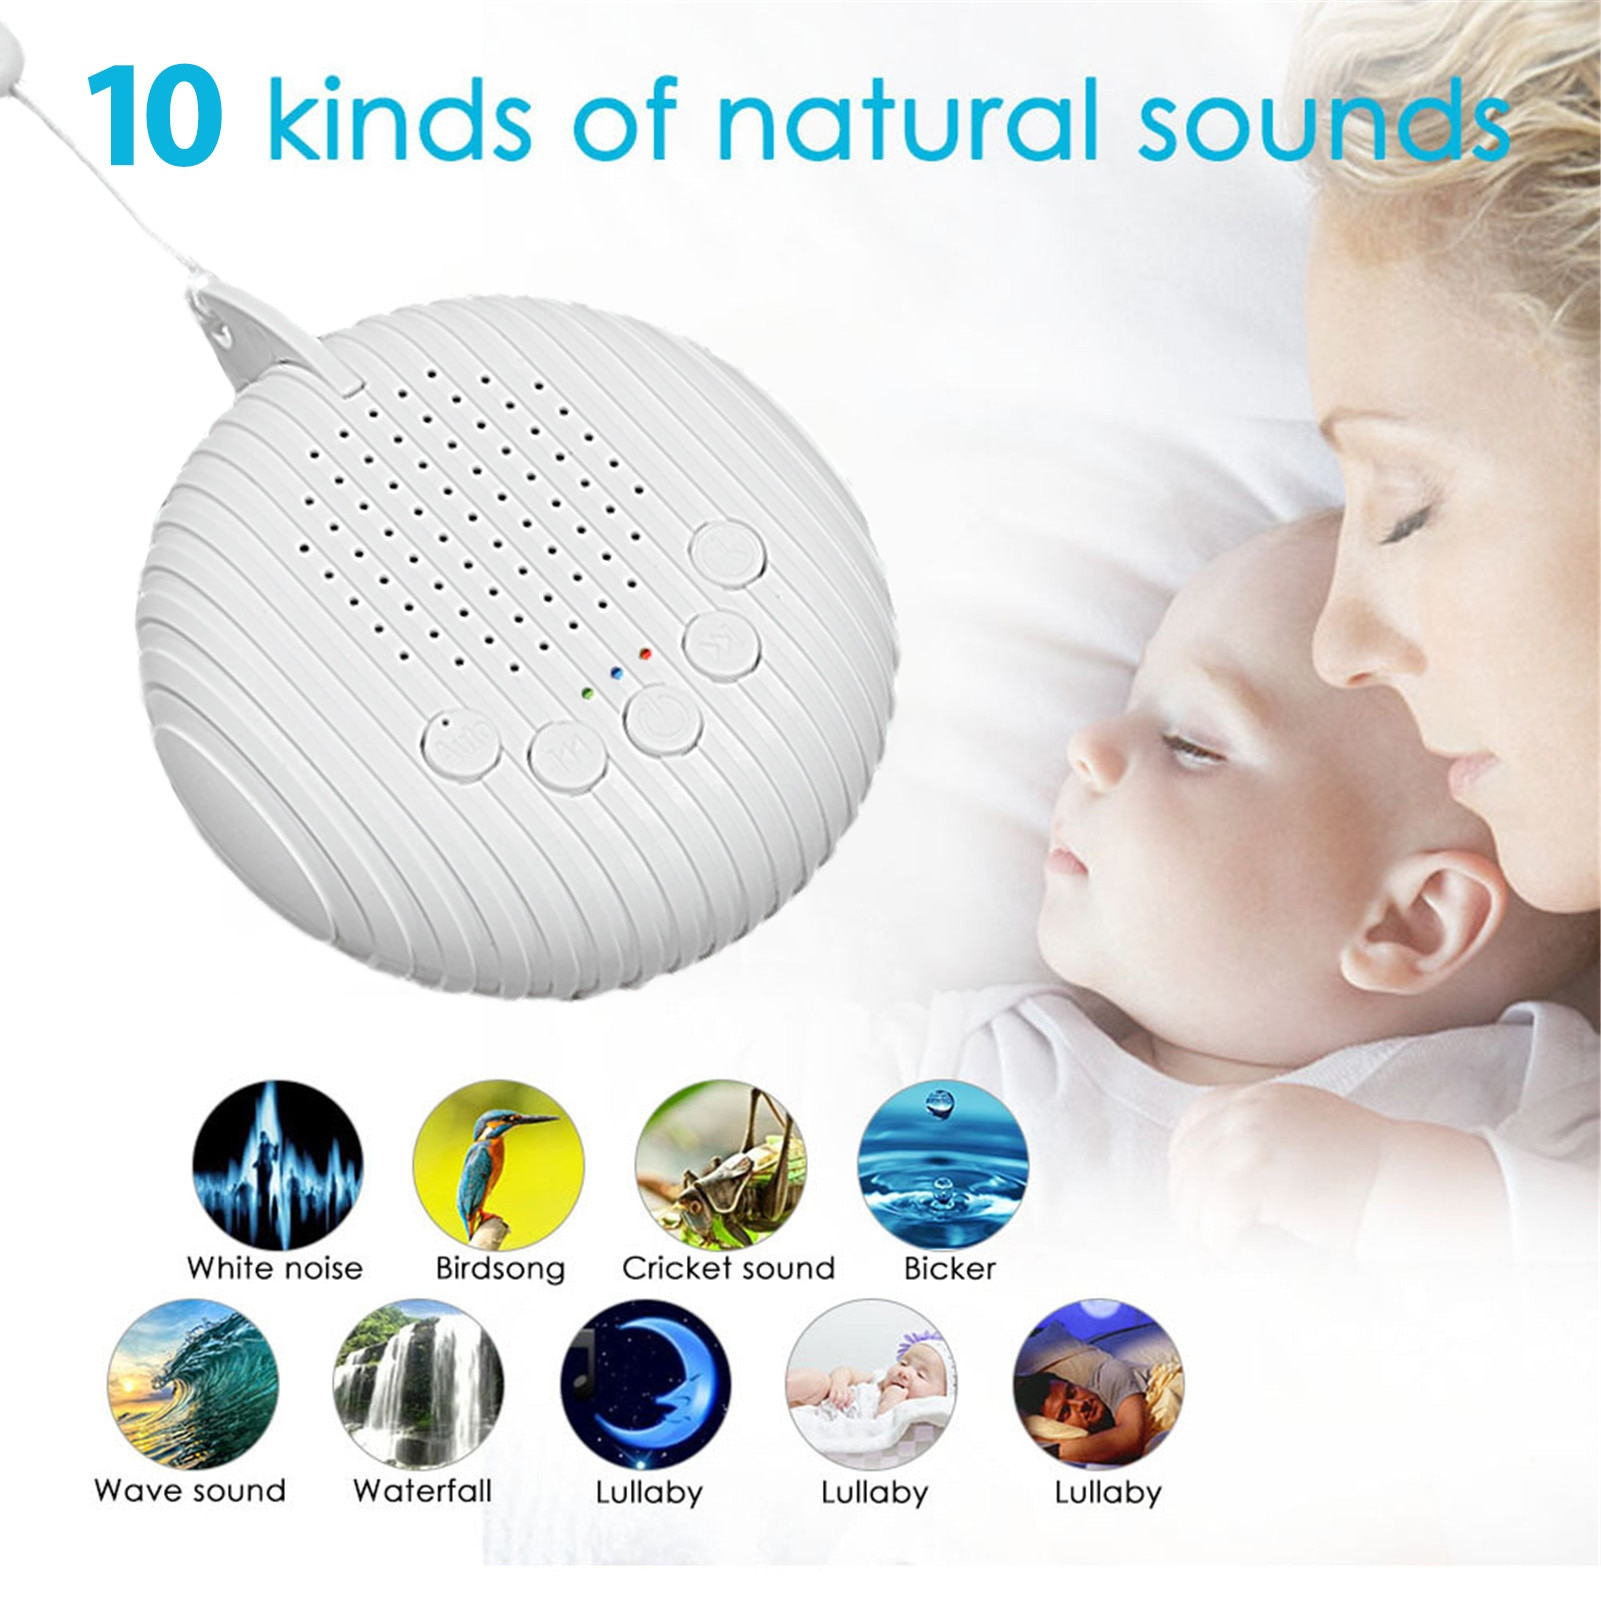 White Noise Machine Sleep Sound Machine For Sleeping & Relaxation For Baby Adult Office Travel Built In USB Timer